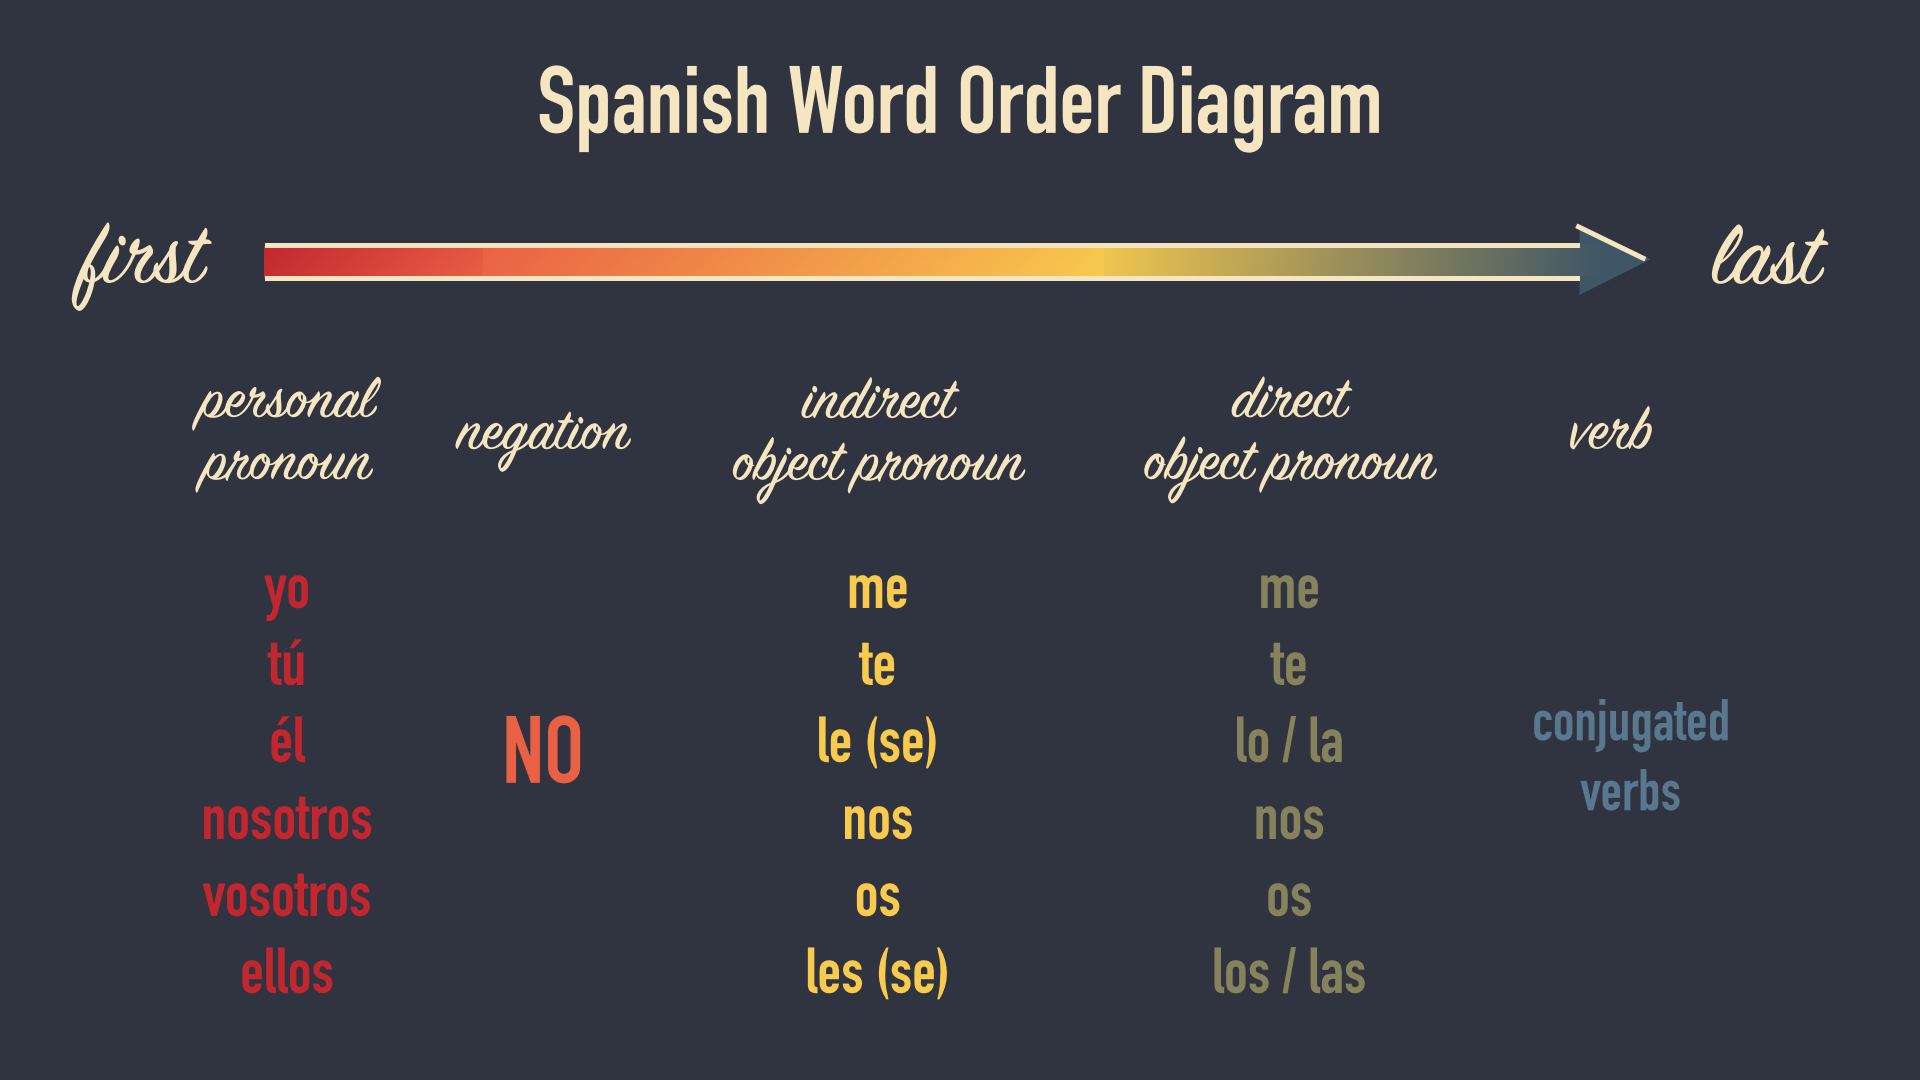 Spanish word order diagram pronouns negation direct indirect object pronoun verb conjugation